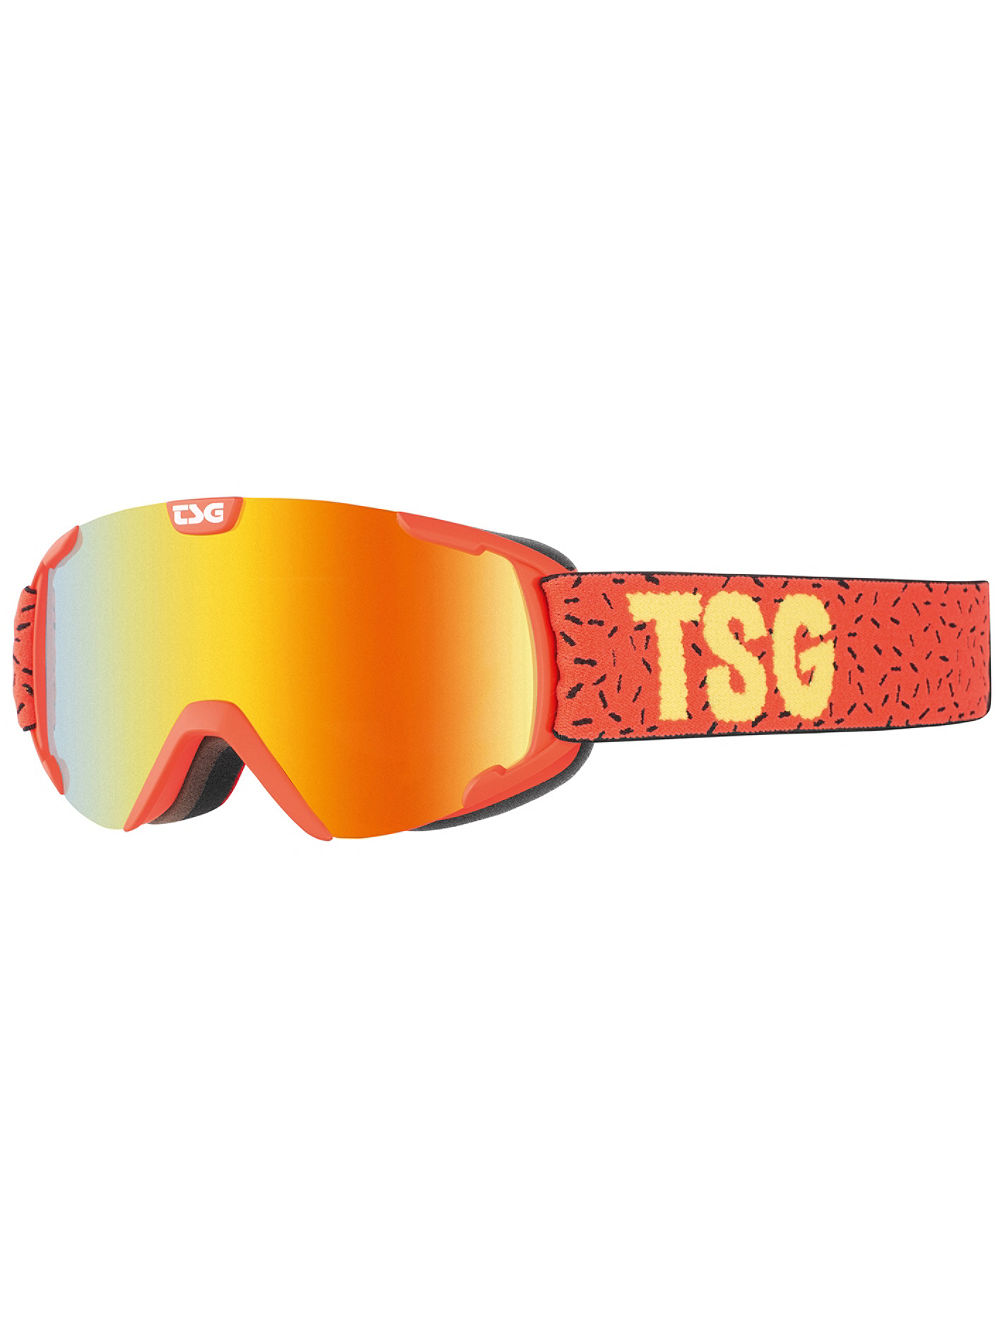 Expect Mini Wiggle Youth Goggle